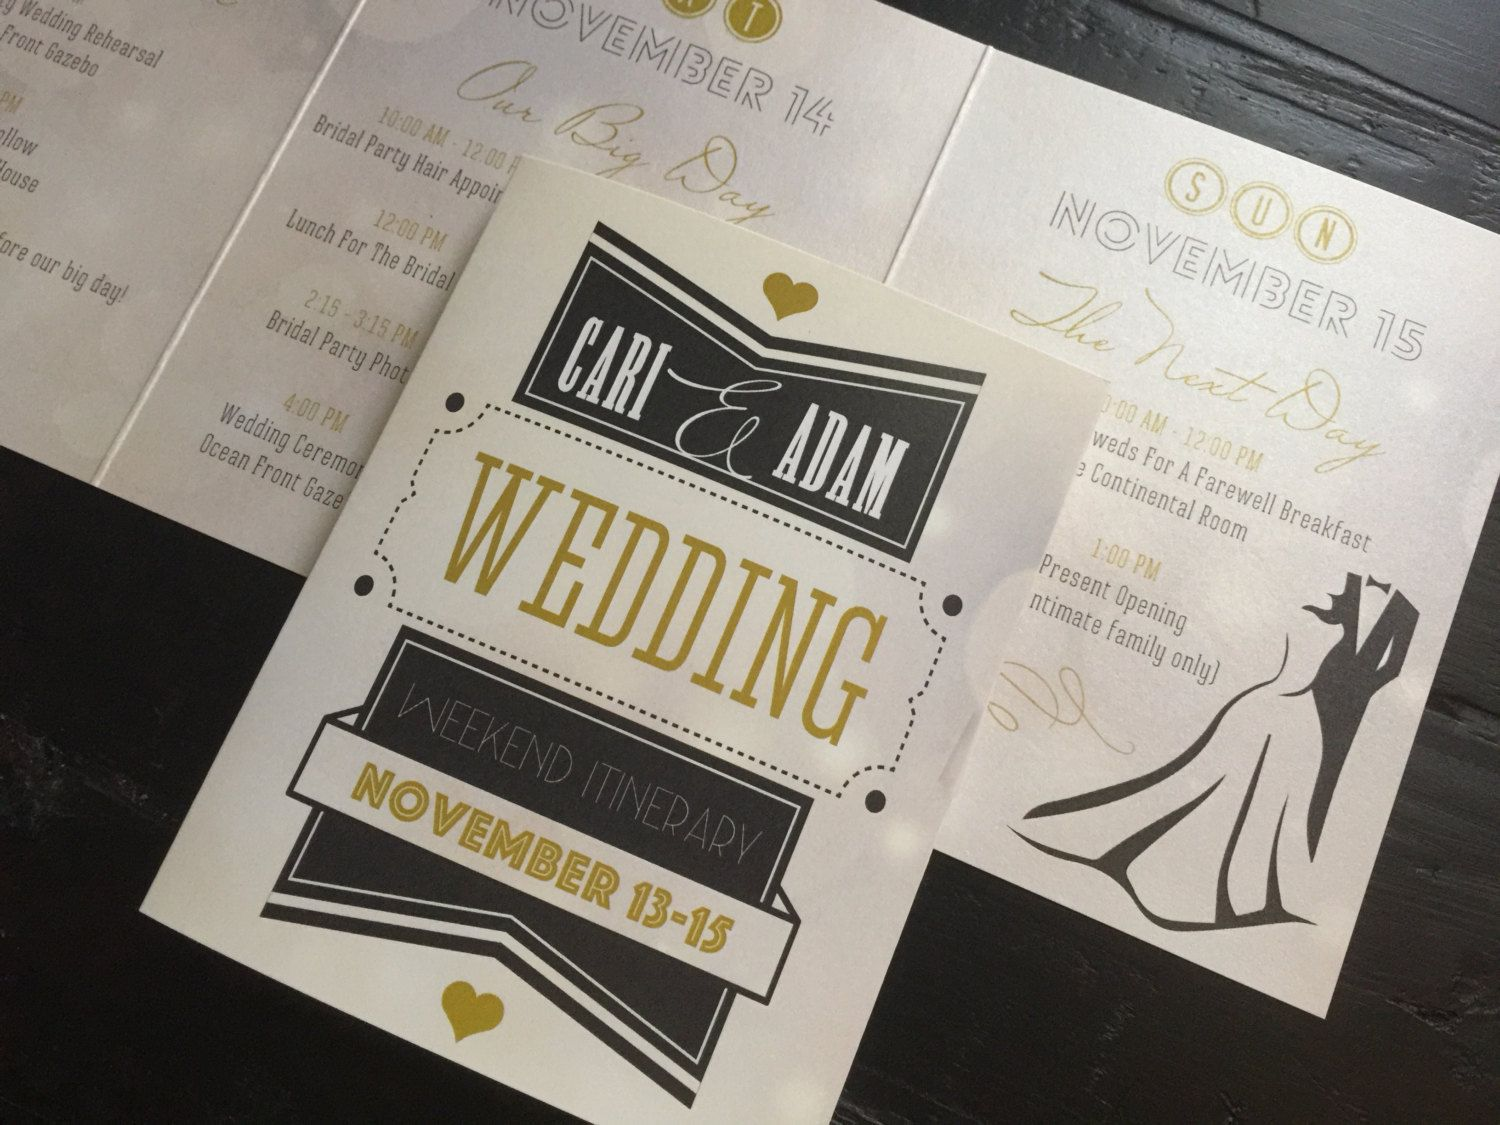 Las Vegas Wedding Weekend Itinerary Trifold by